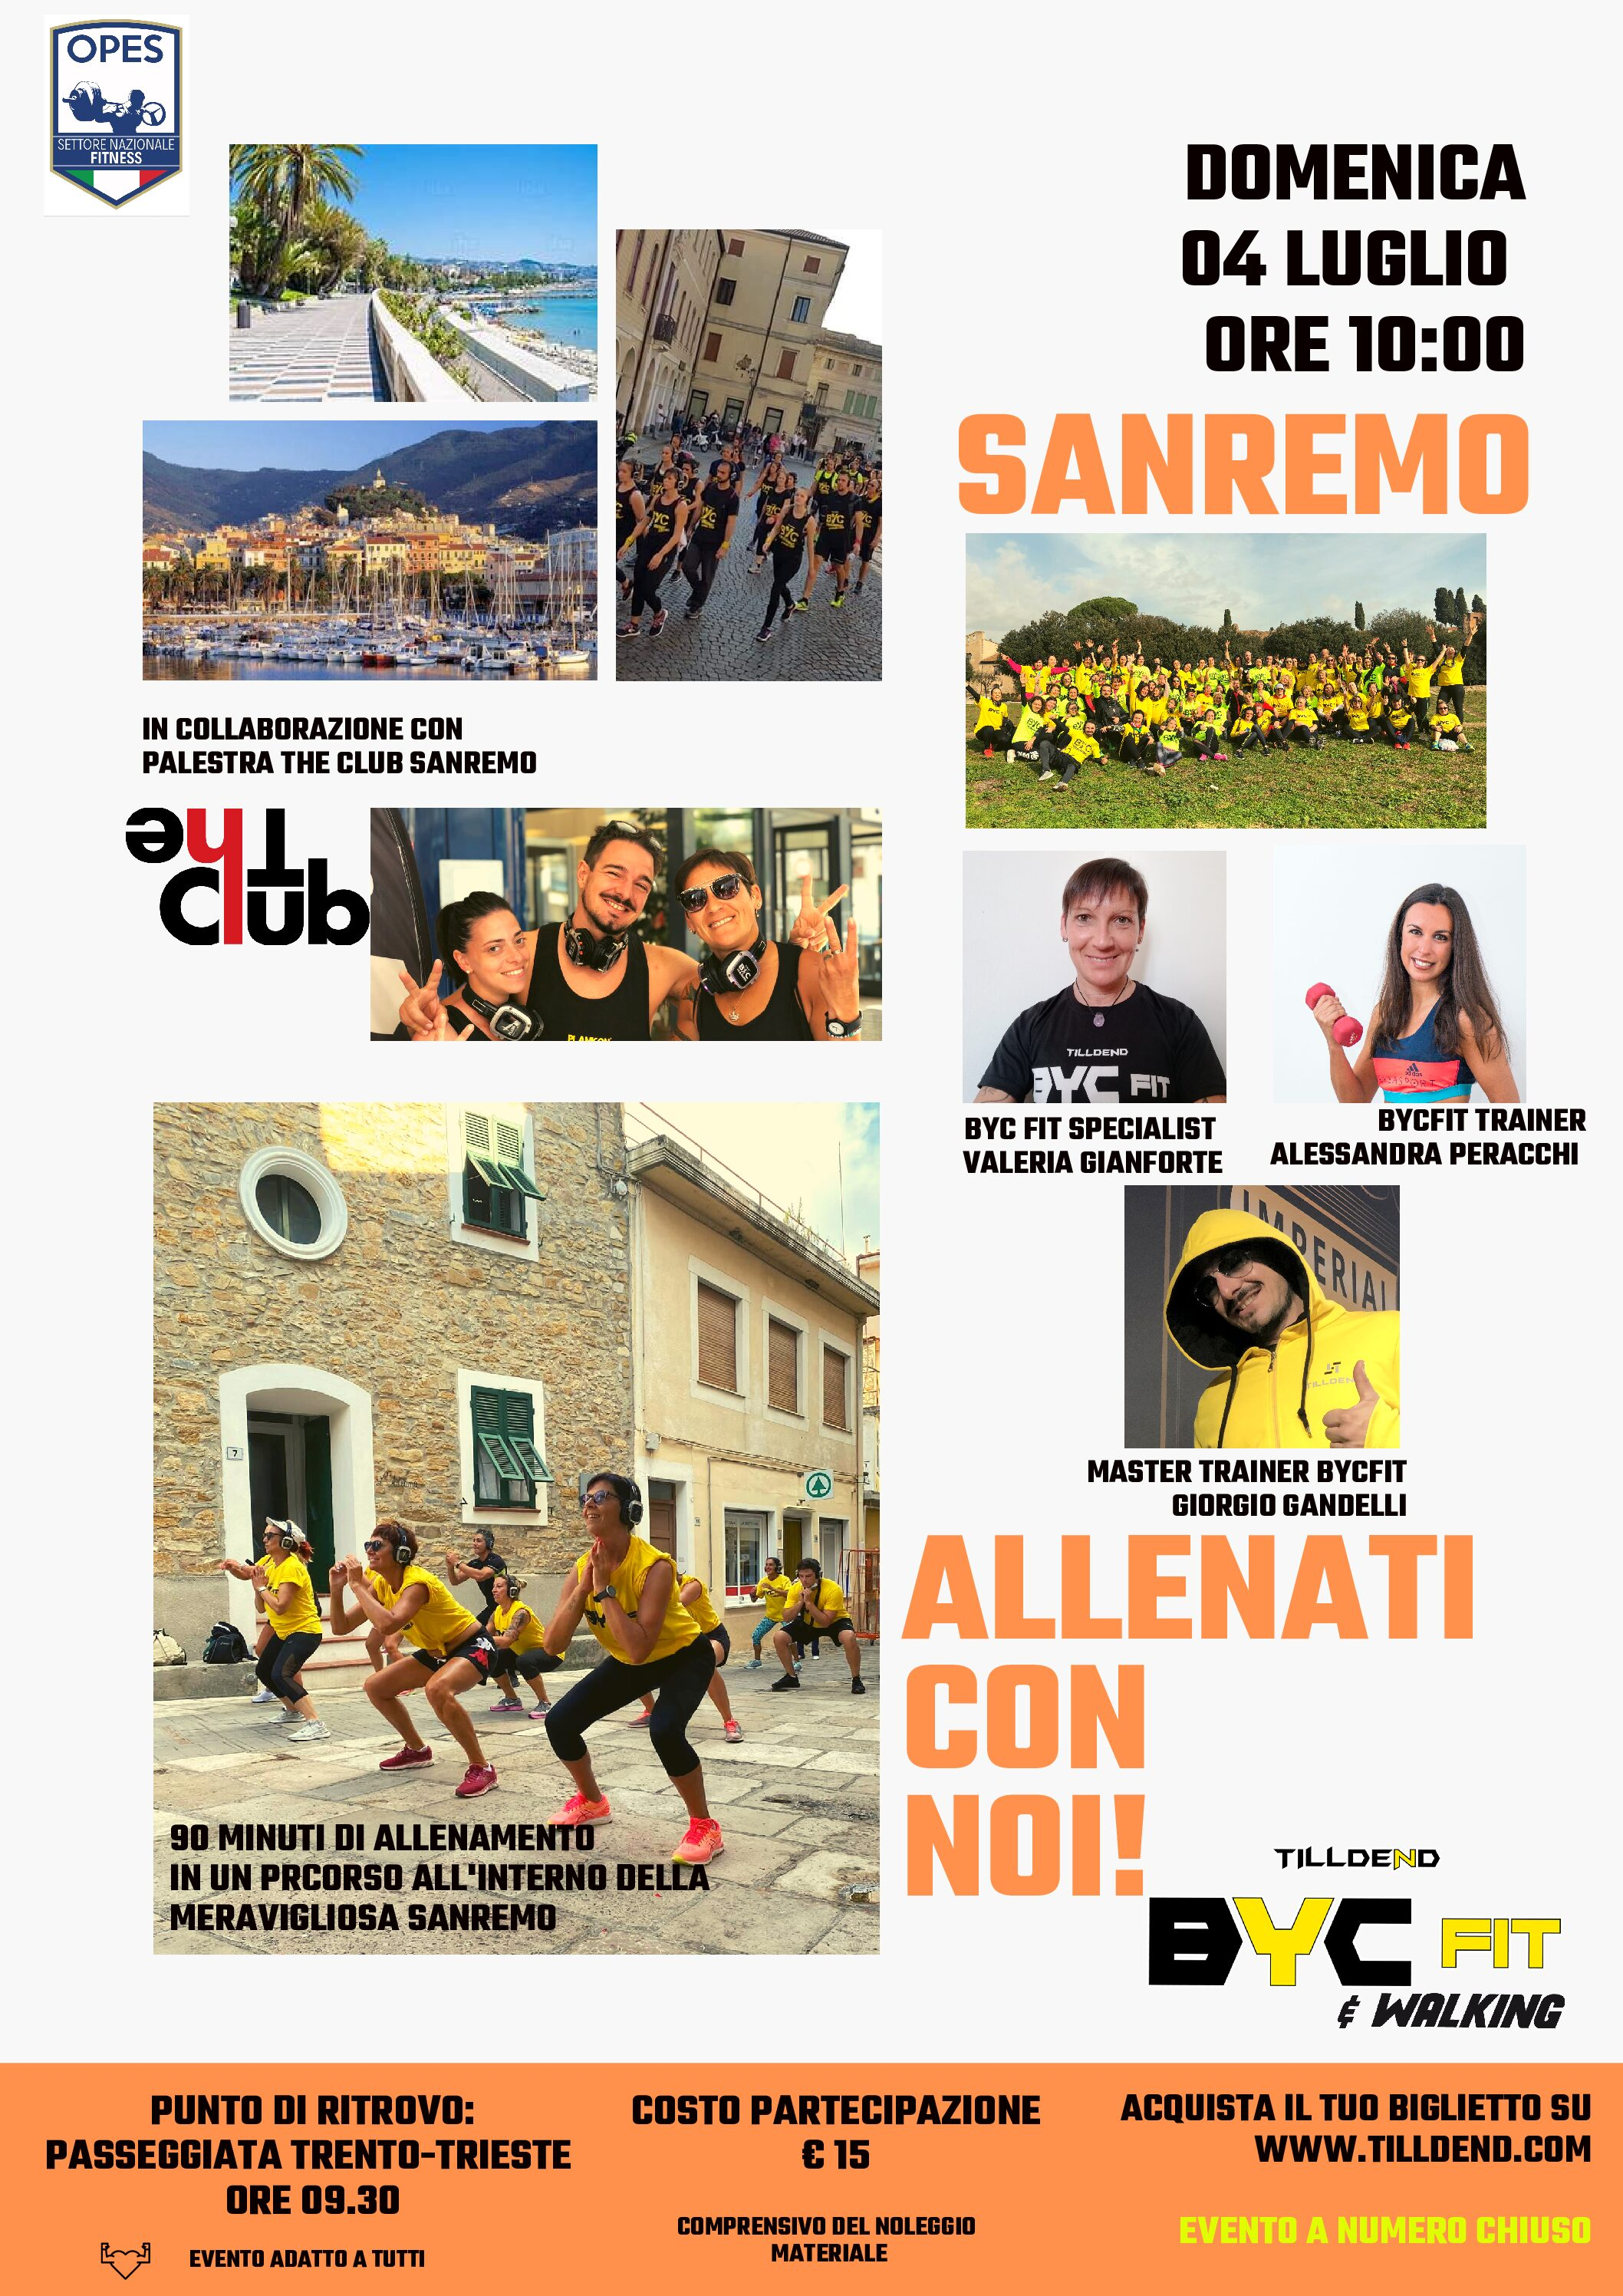 0704 BYC FIT and Walking – Sanremo